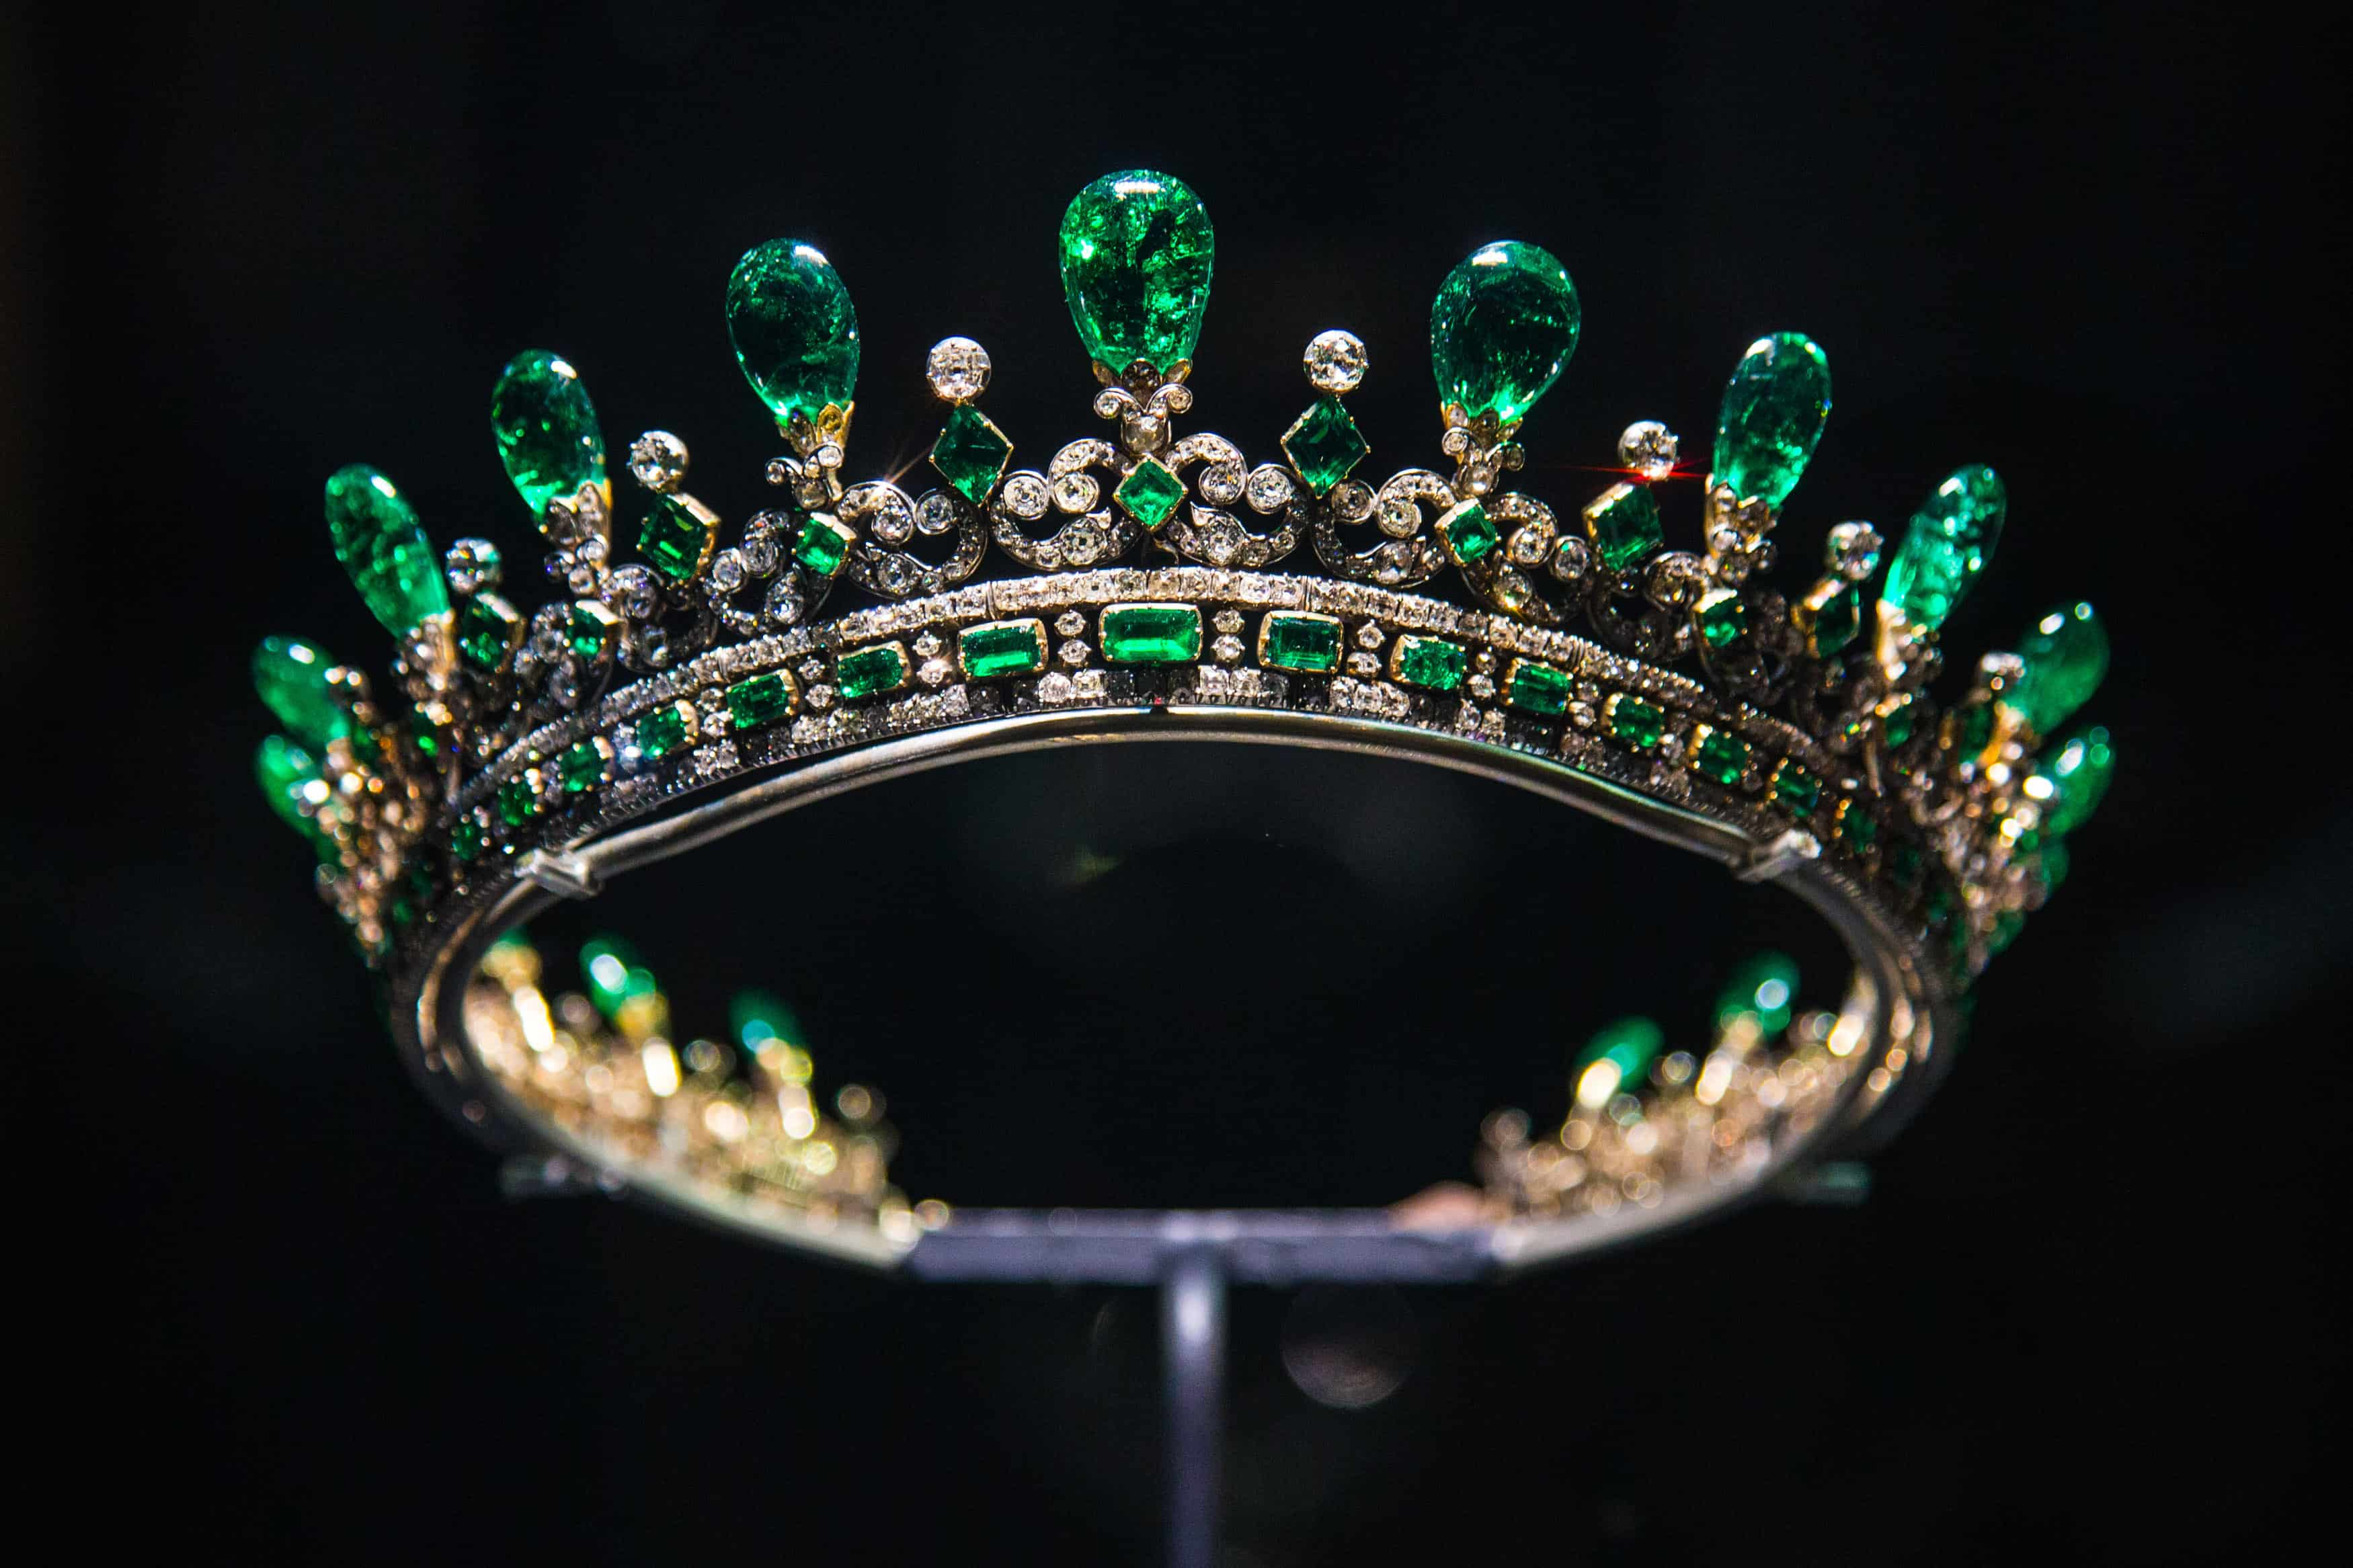 Queen Victoria diamond emerald